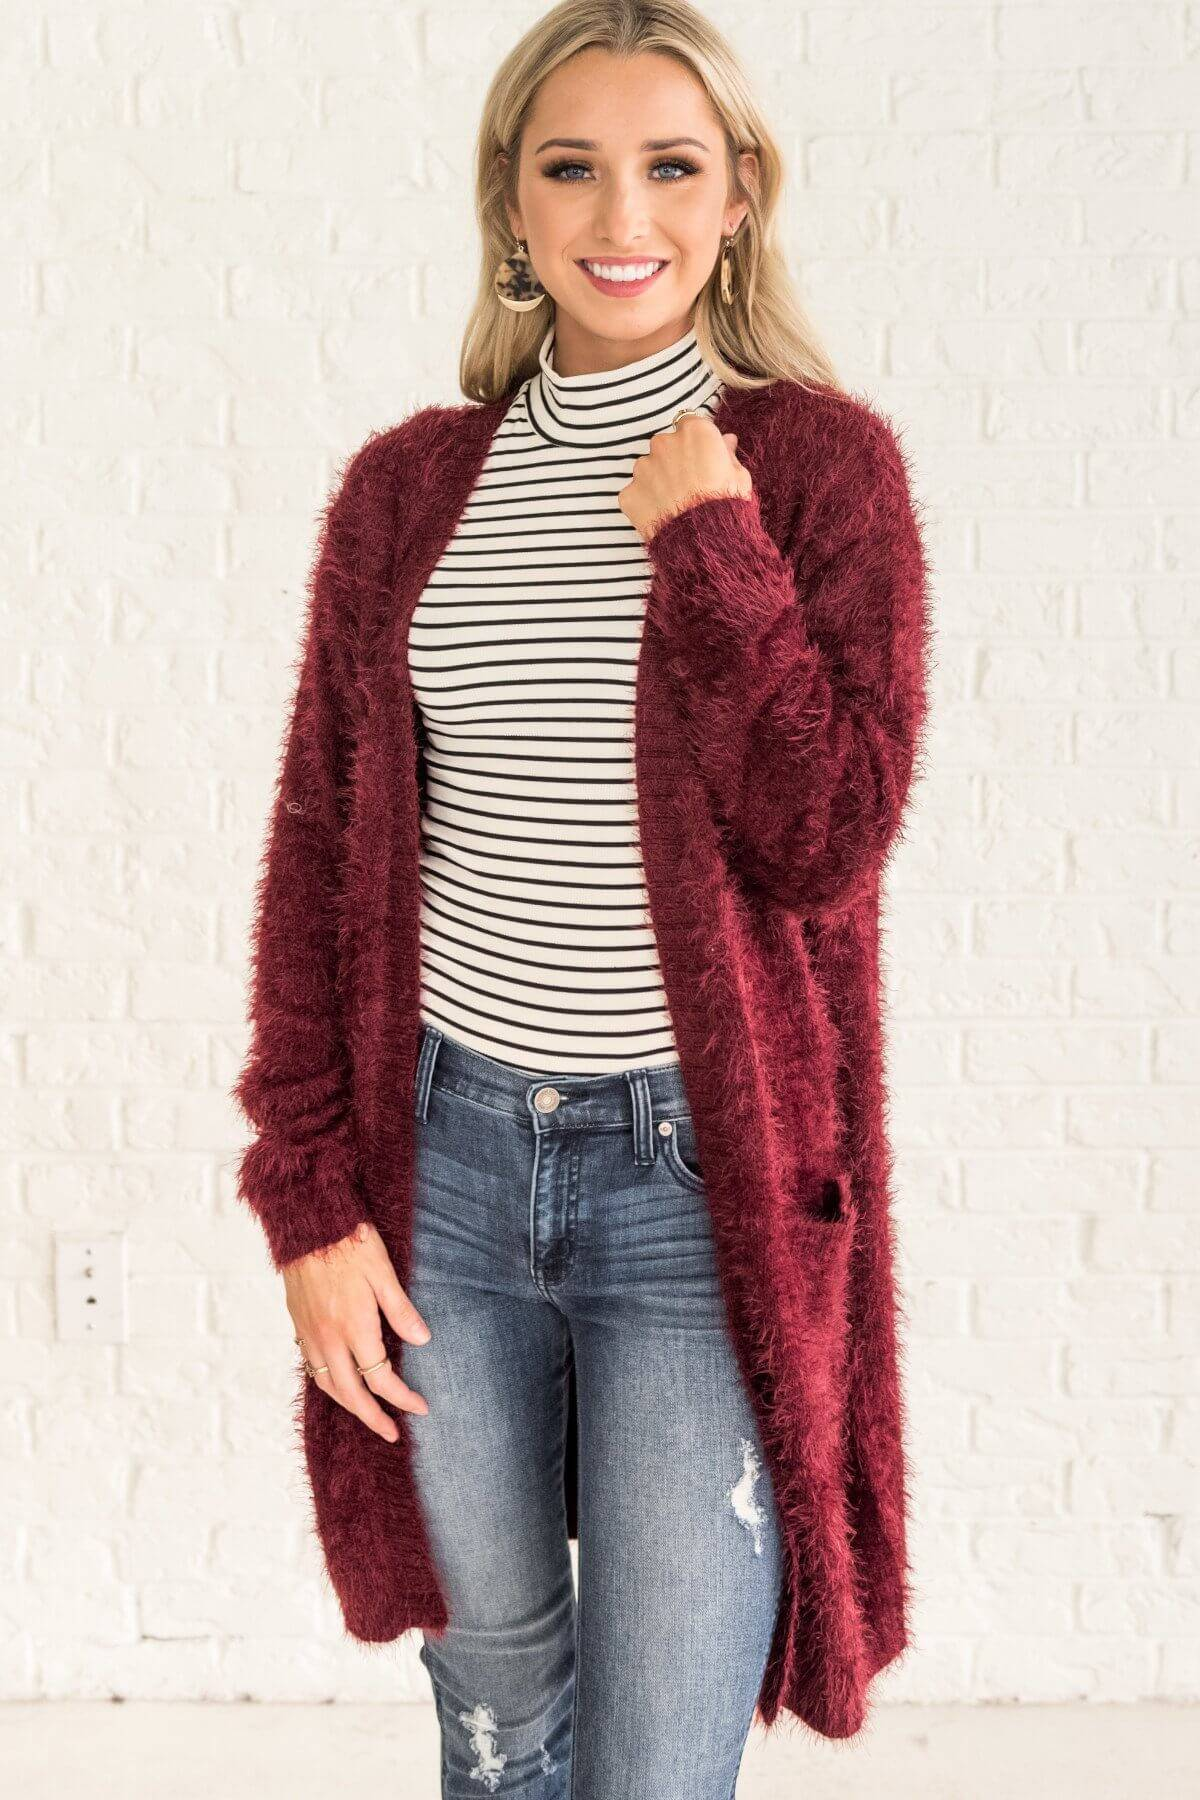 Burgundy Red Fuzzy Eyelash Knit Open Front Long Cardigans for Women